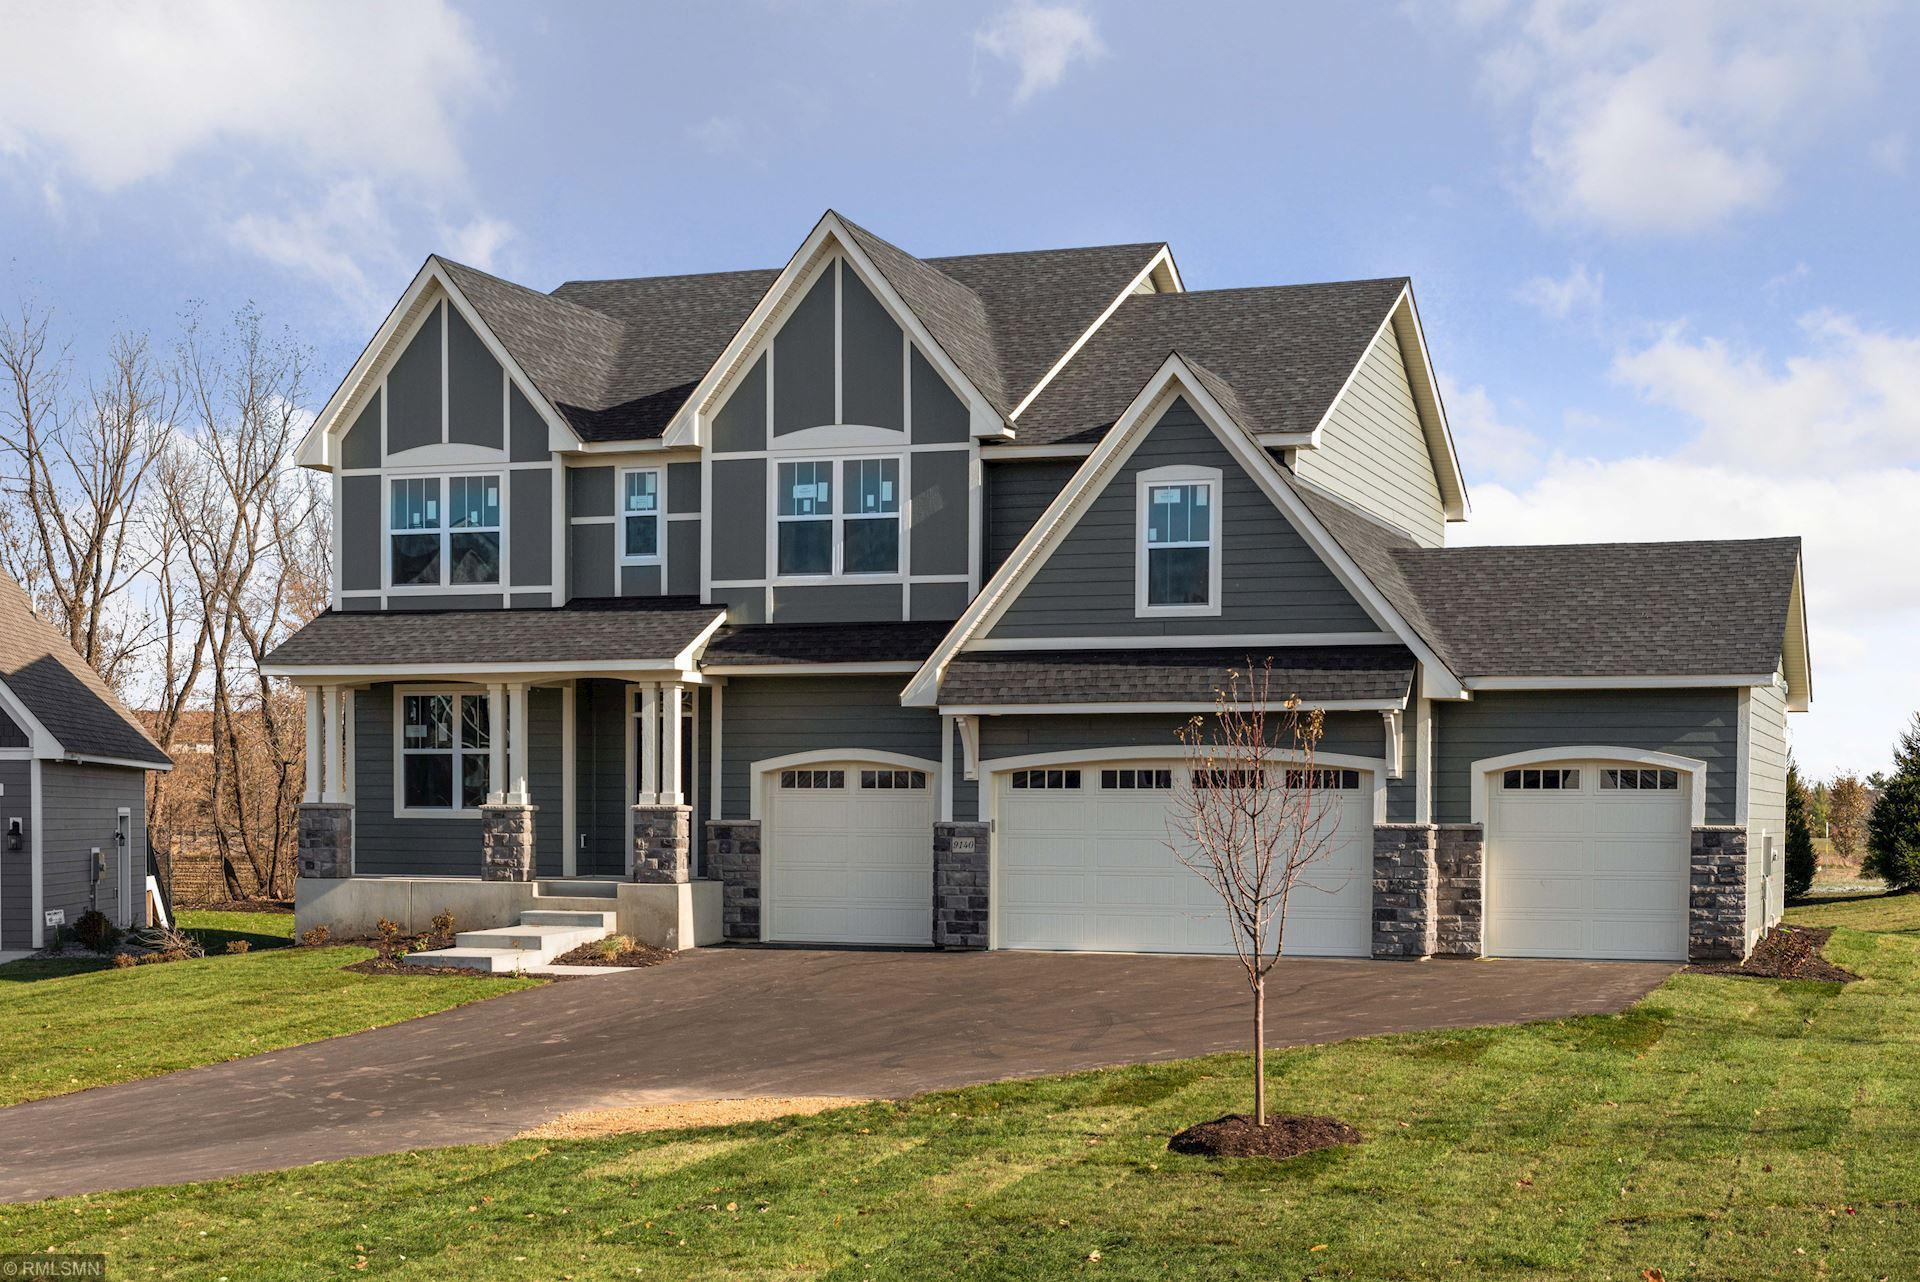 9140 Eagle Property Photo - Chanhassen, MN real estate listing